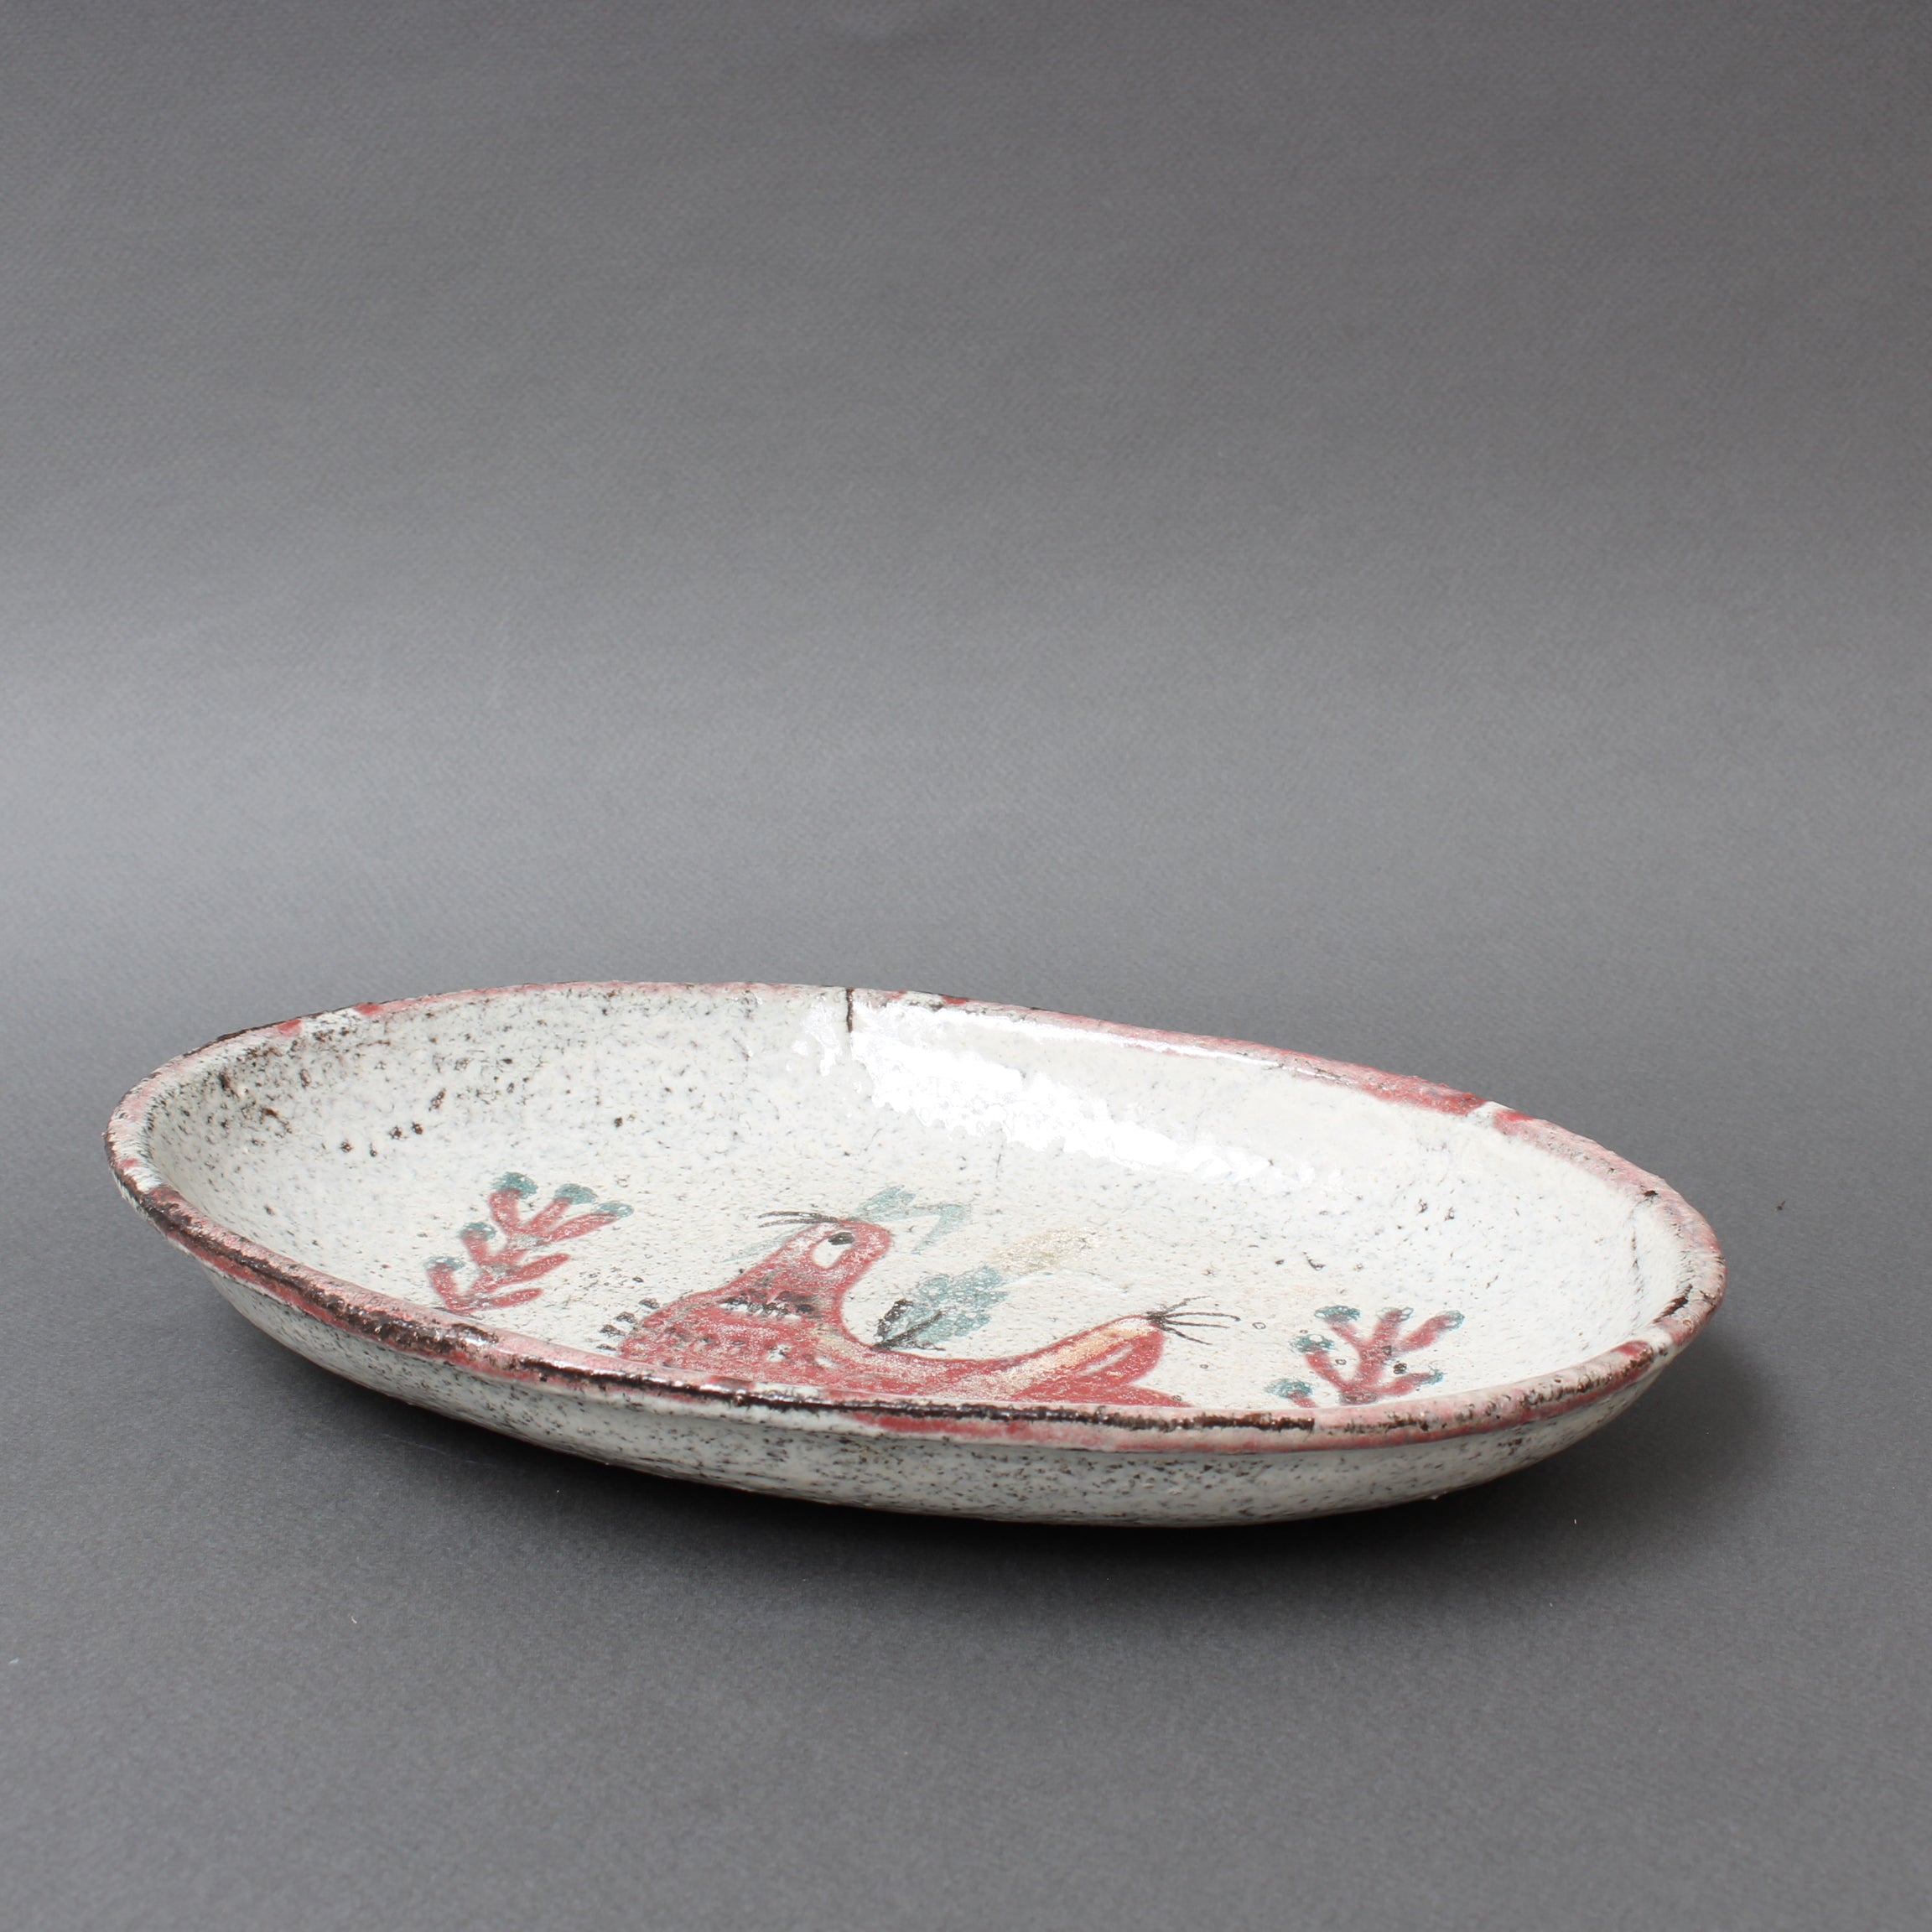 French Ceramic Rooster Motif Tray by Gustave Reynaud - Le Mûrier (circa 1950s)